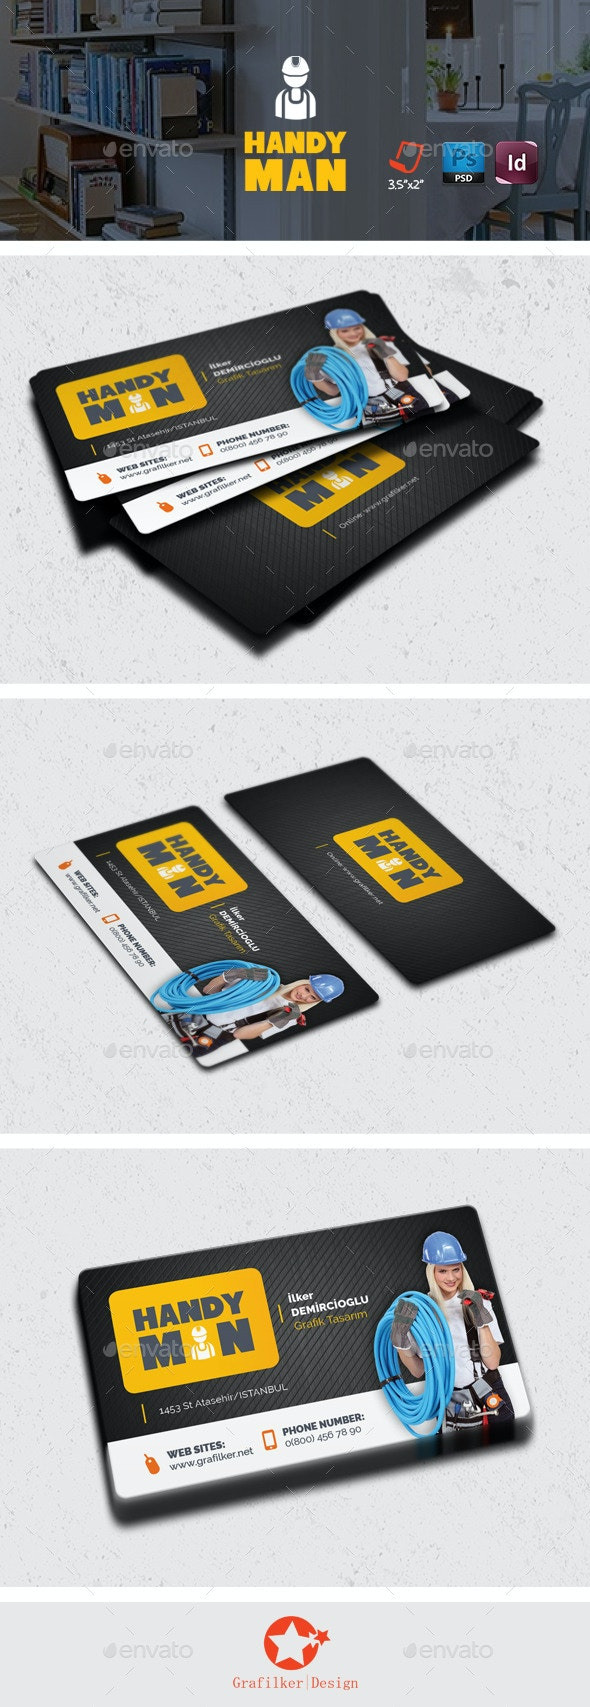 Handyman Business Card Templates - Corporate Business Cards